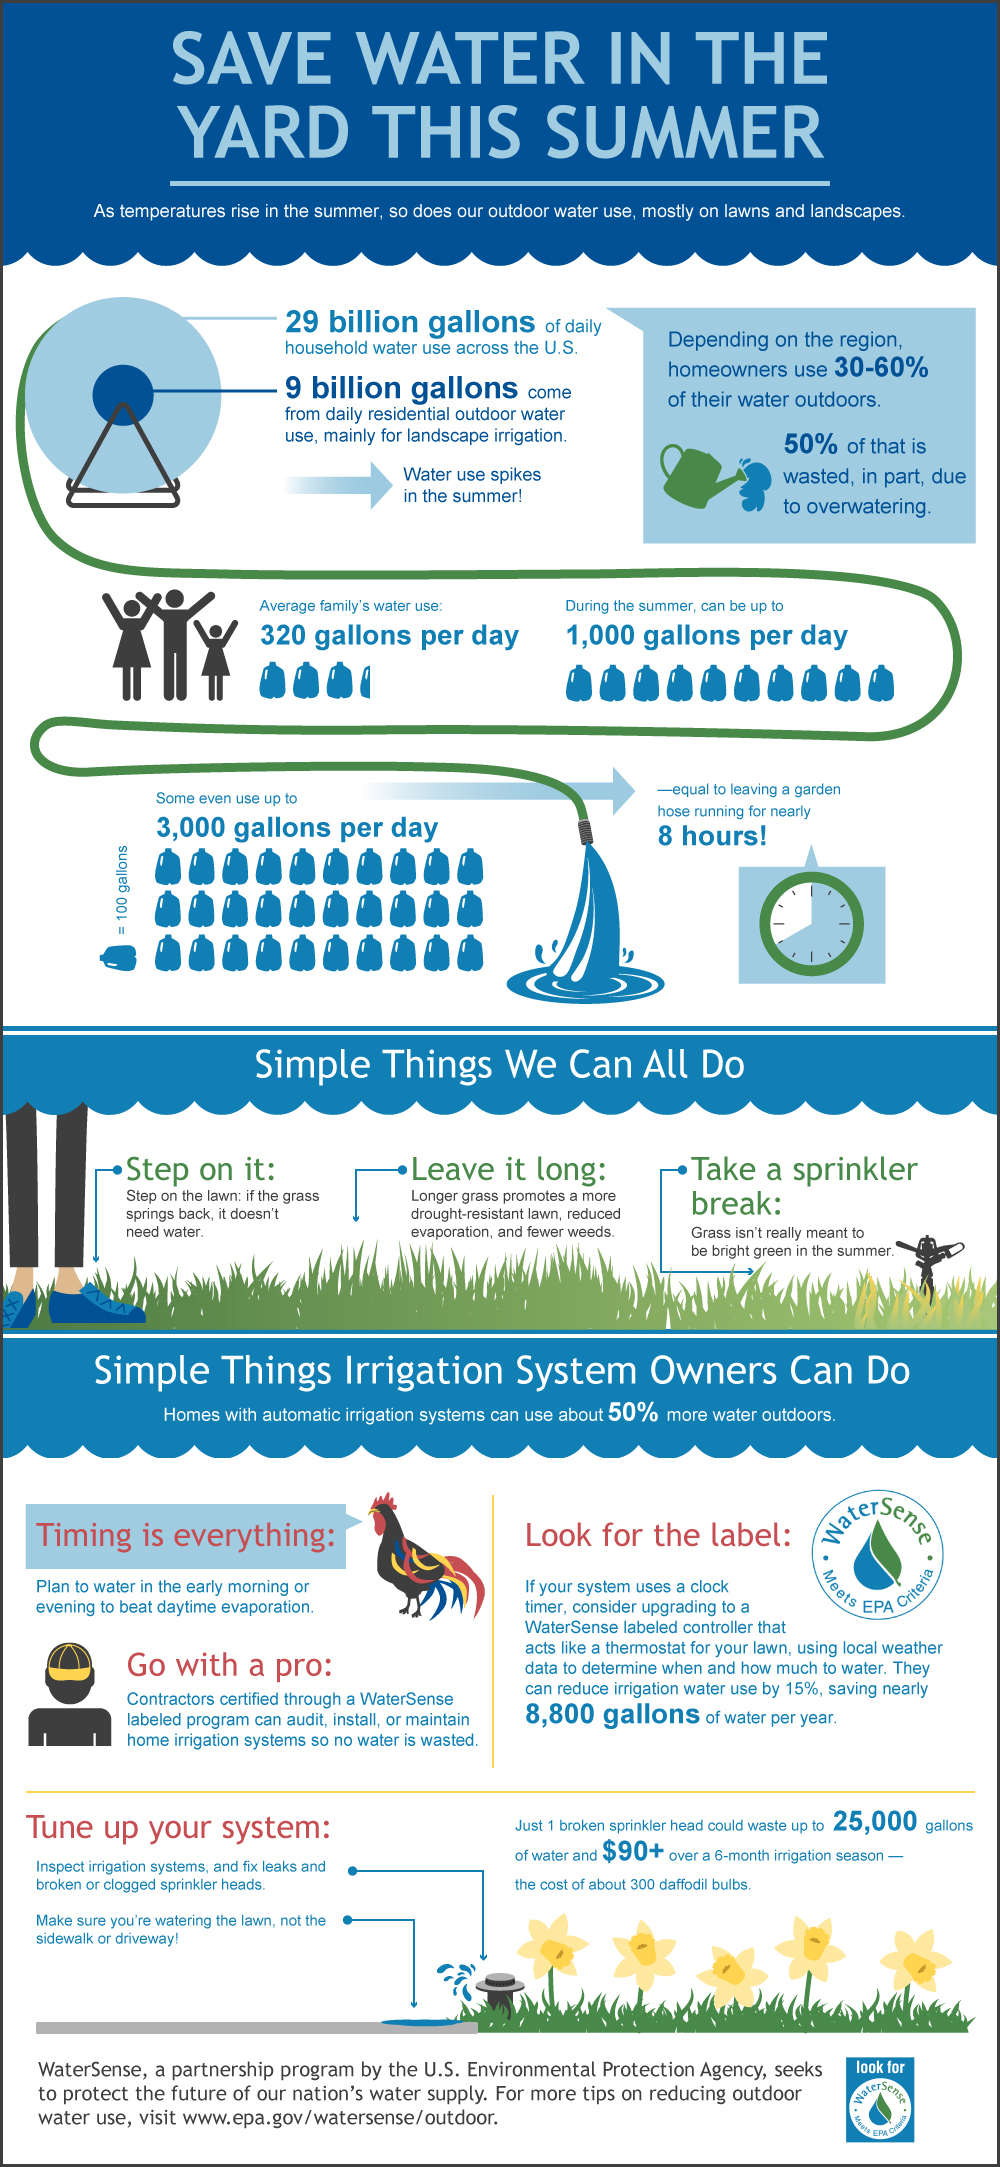 Summer Watering Infographic - Smart-Water